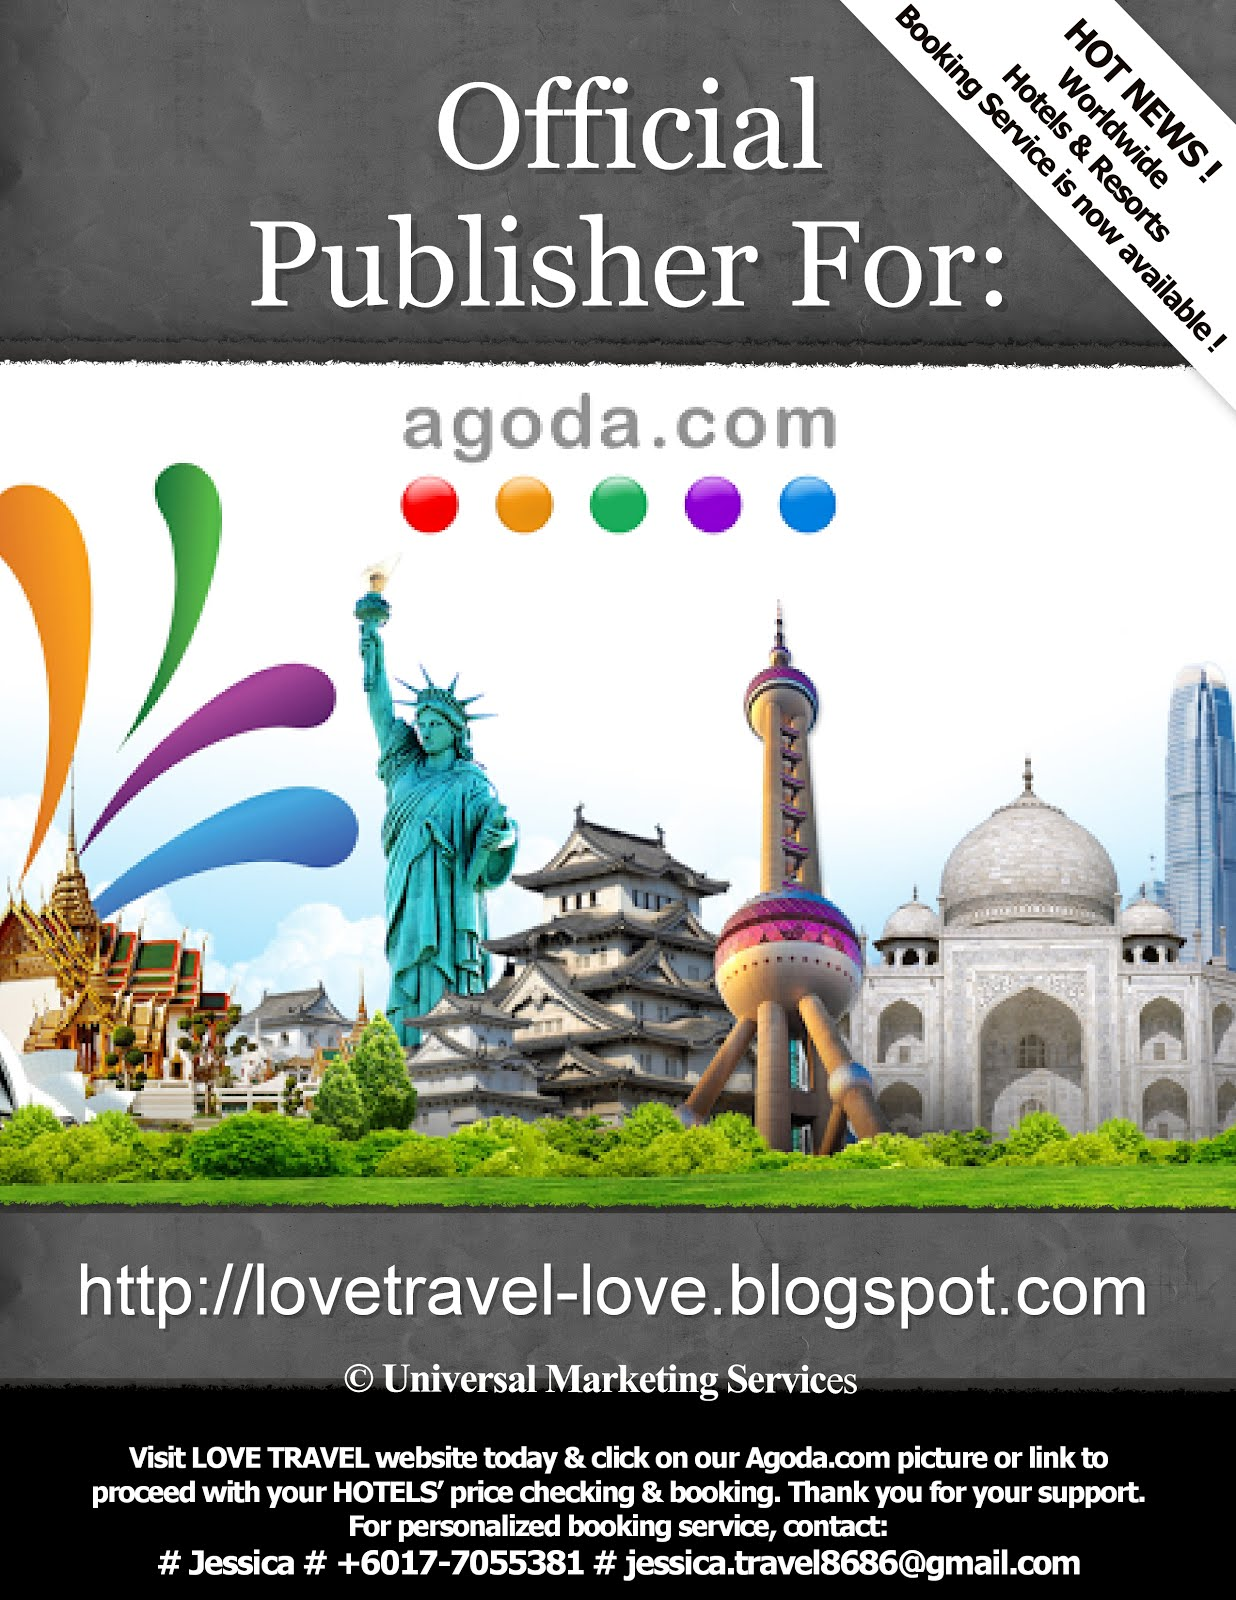 Glad to announce that Love Travel is now an official publisher for AGODA.COM ! CLICK this image now